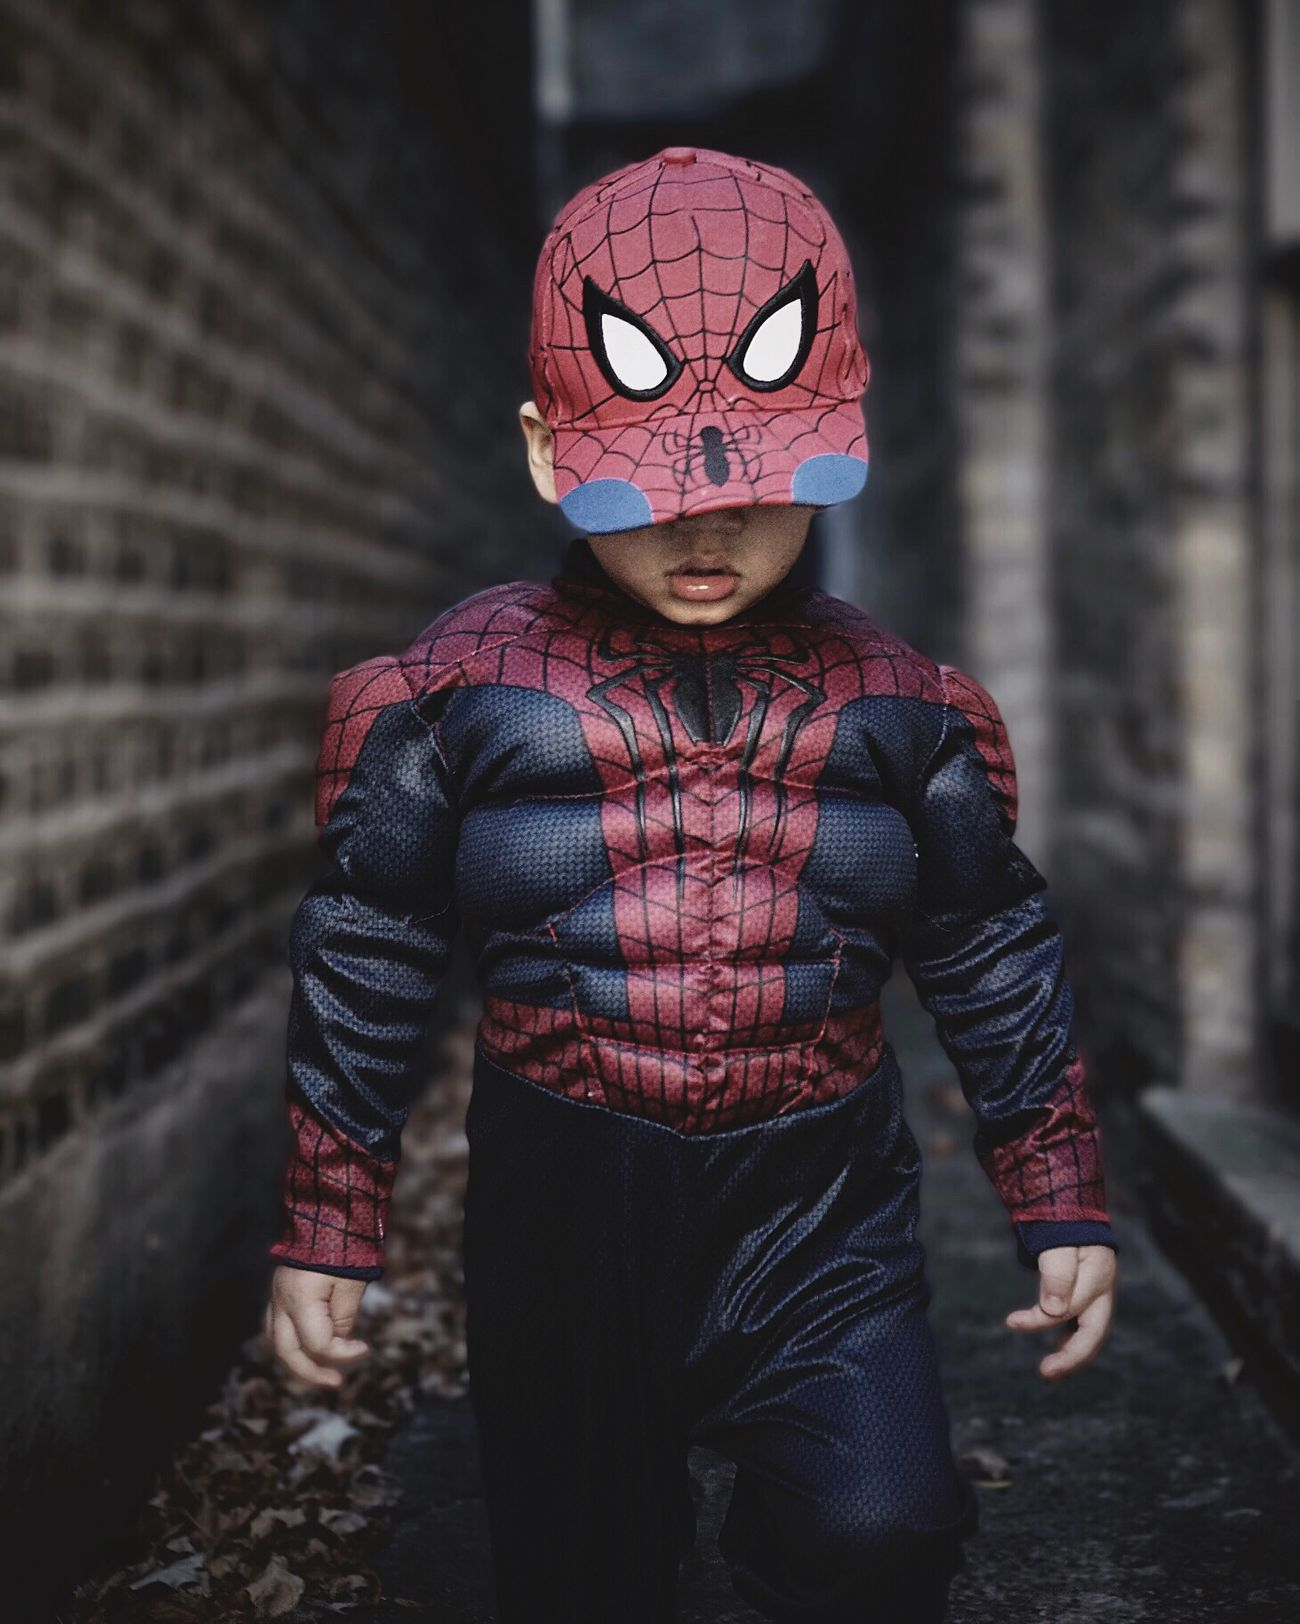 Saving the World EyeEm Best Shots EyeEm Spiderman Capture The Moment Portrait Texture Texturedgangways EliotAndres